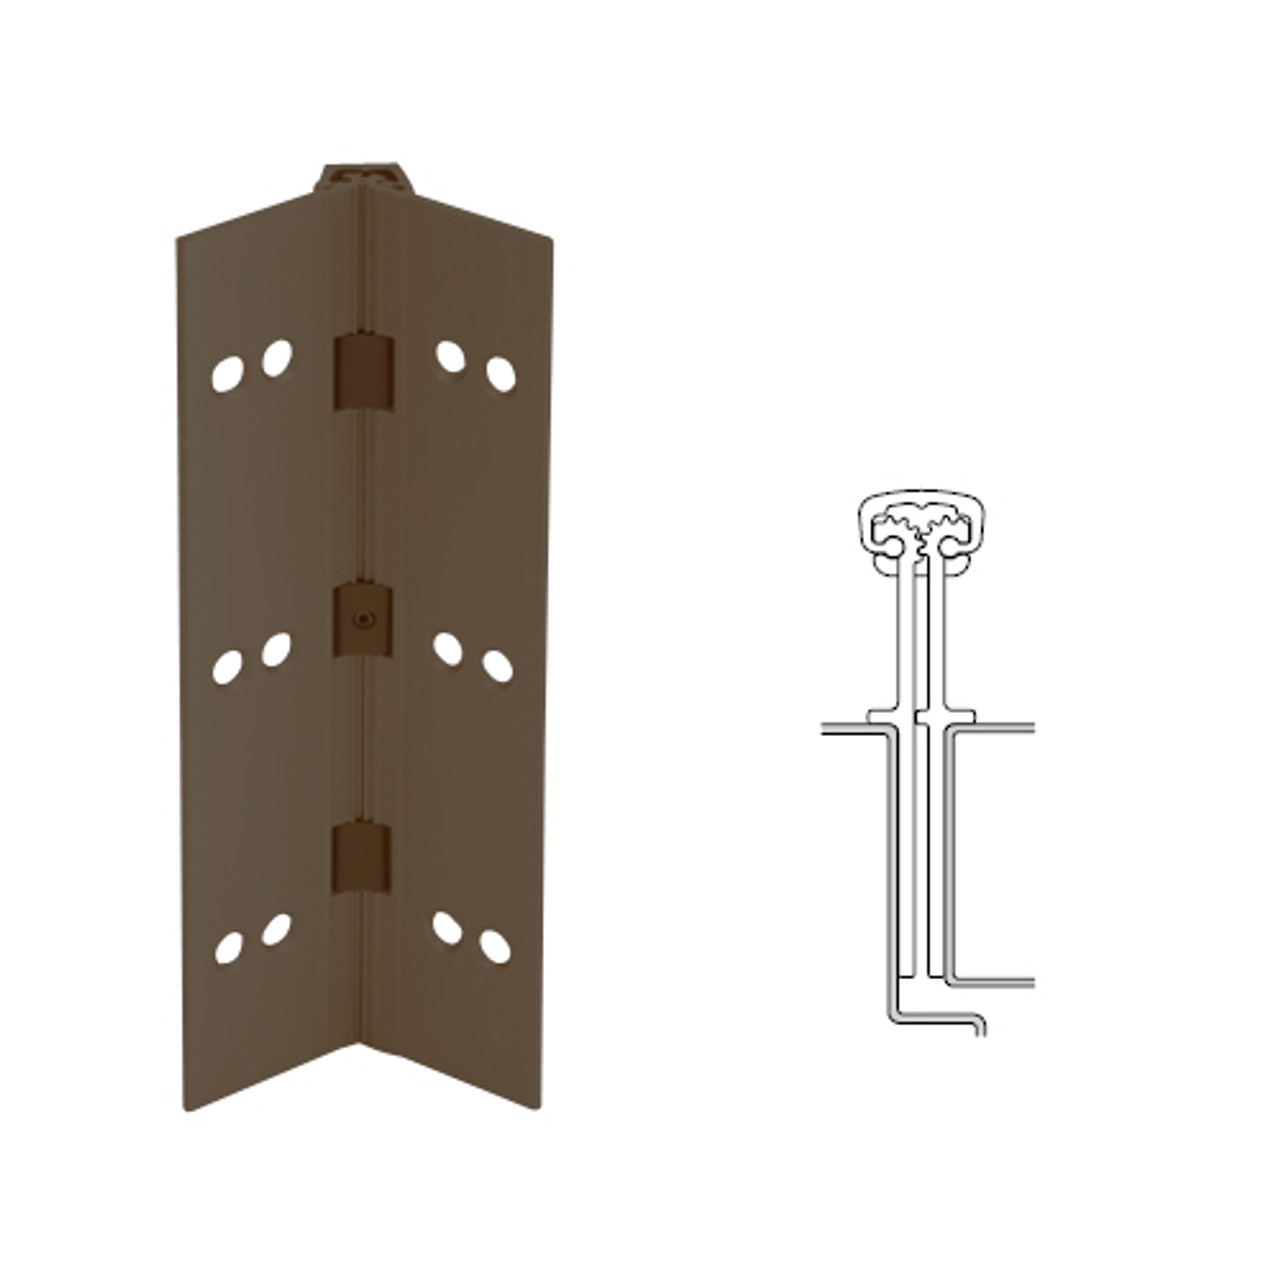 040XY-313AN-85-SECHM IVES Full Mortise Continuous Geared Hinges with Security Screws - Hex Pin Drive in Dark Bronze Anodized